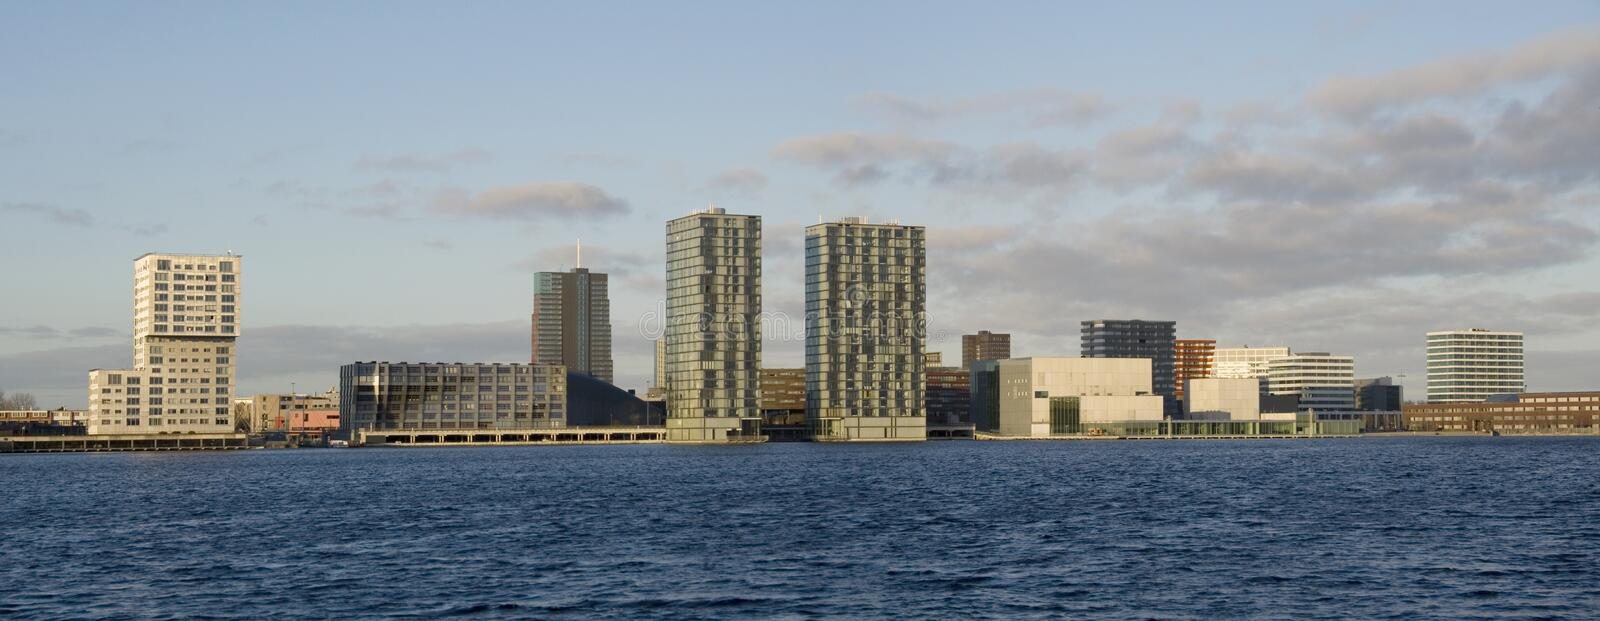 Skyline of Almere royalty free stock photography